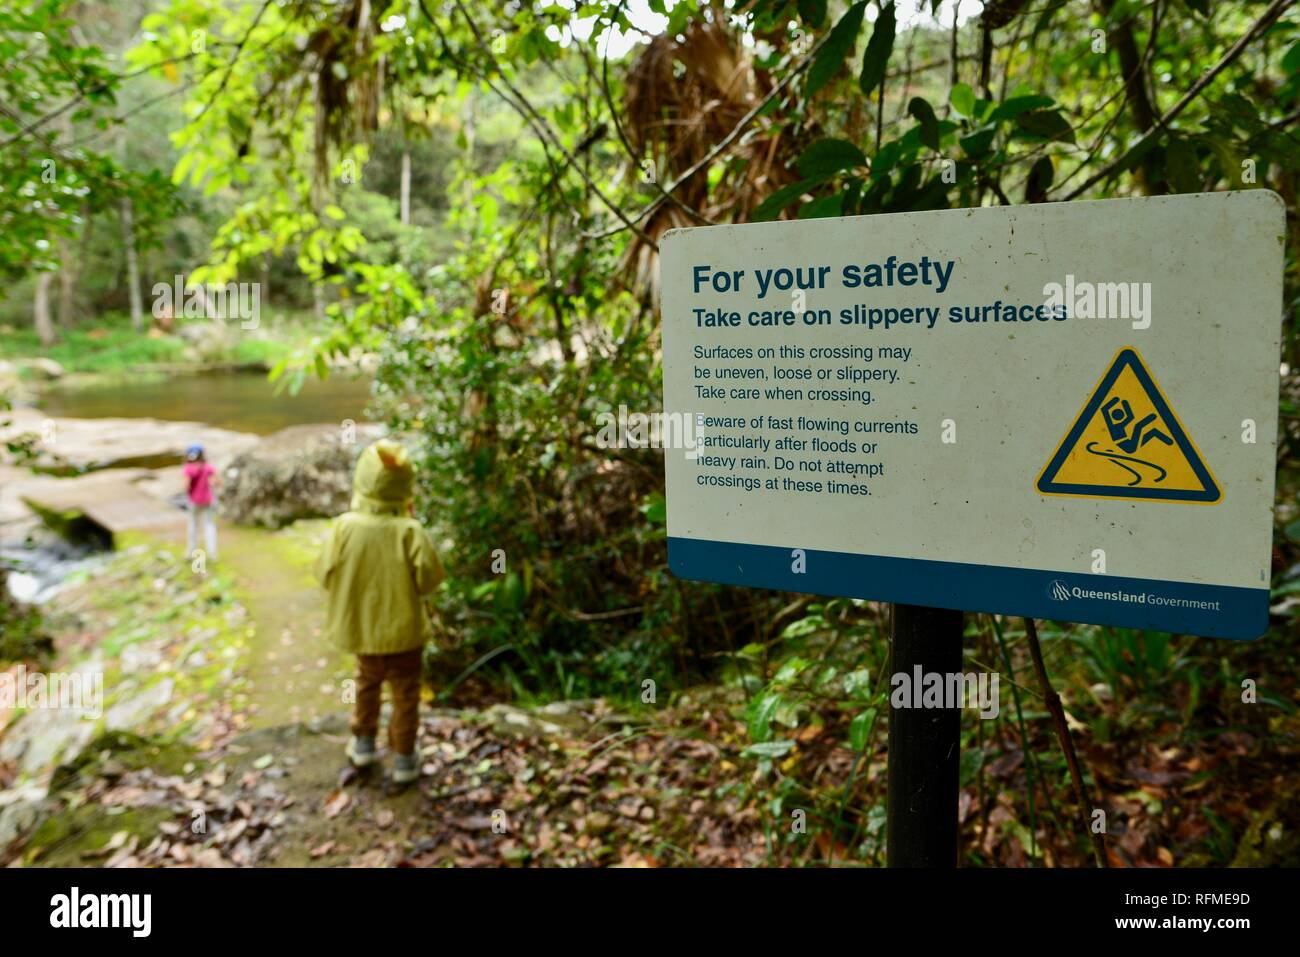 For your safety take care on slippery surfaces sign, Granite bend track to broken river, Eungella National Park, Queensland, Australia Stock Photo